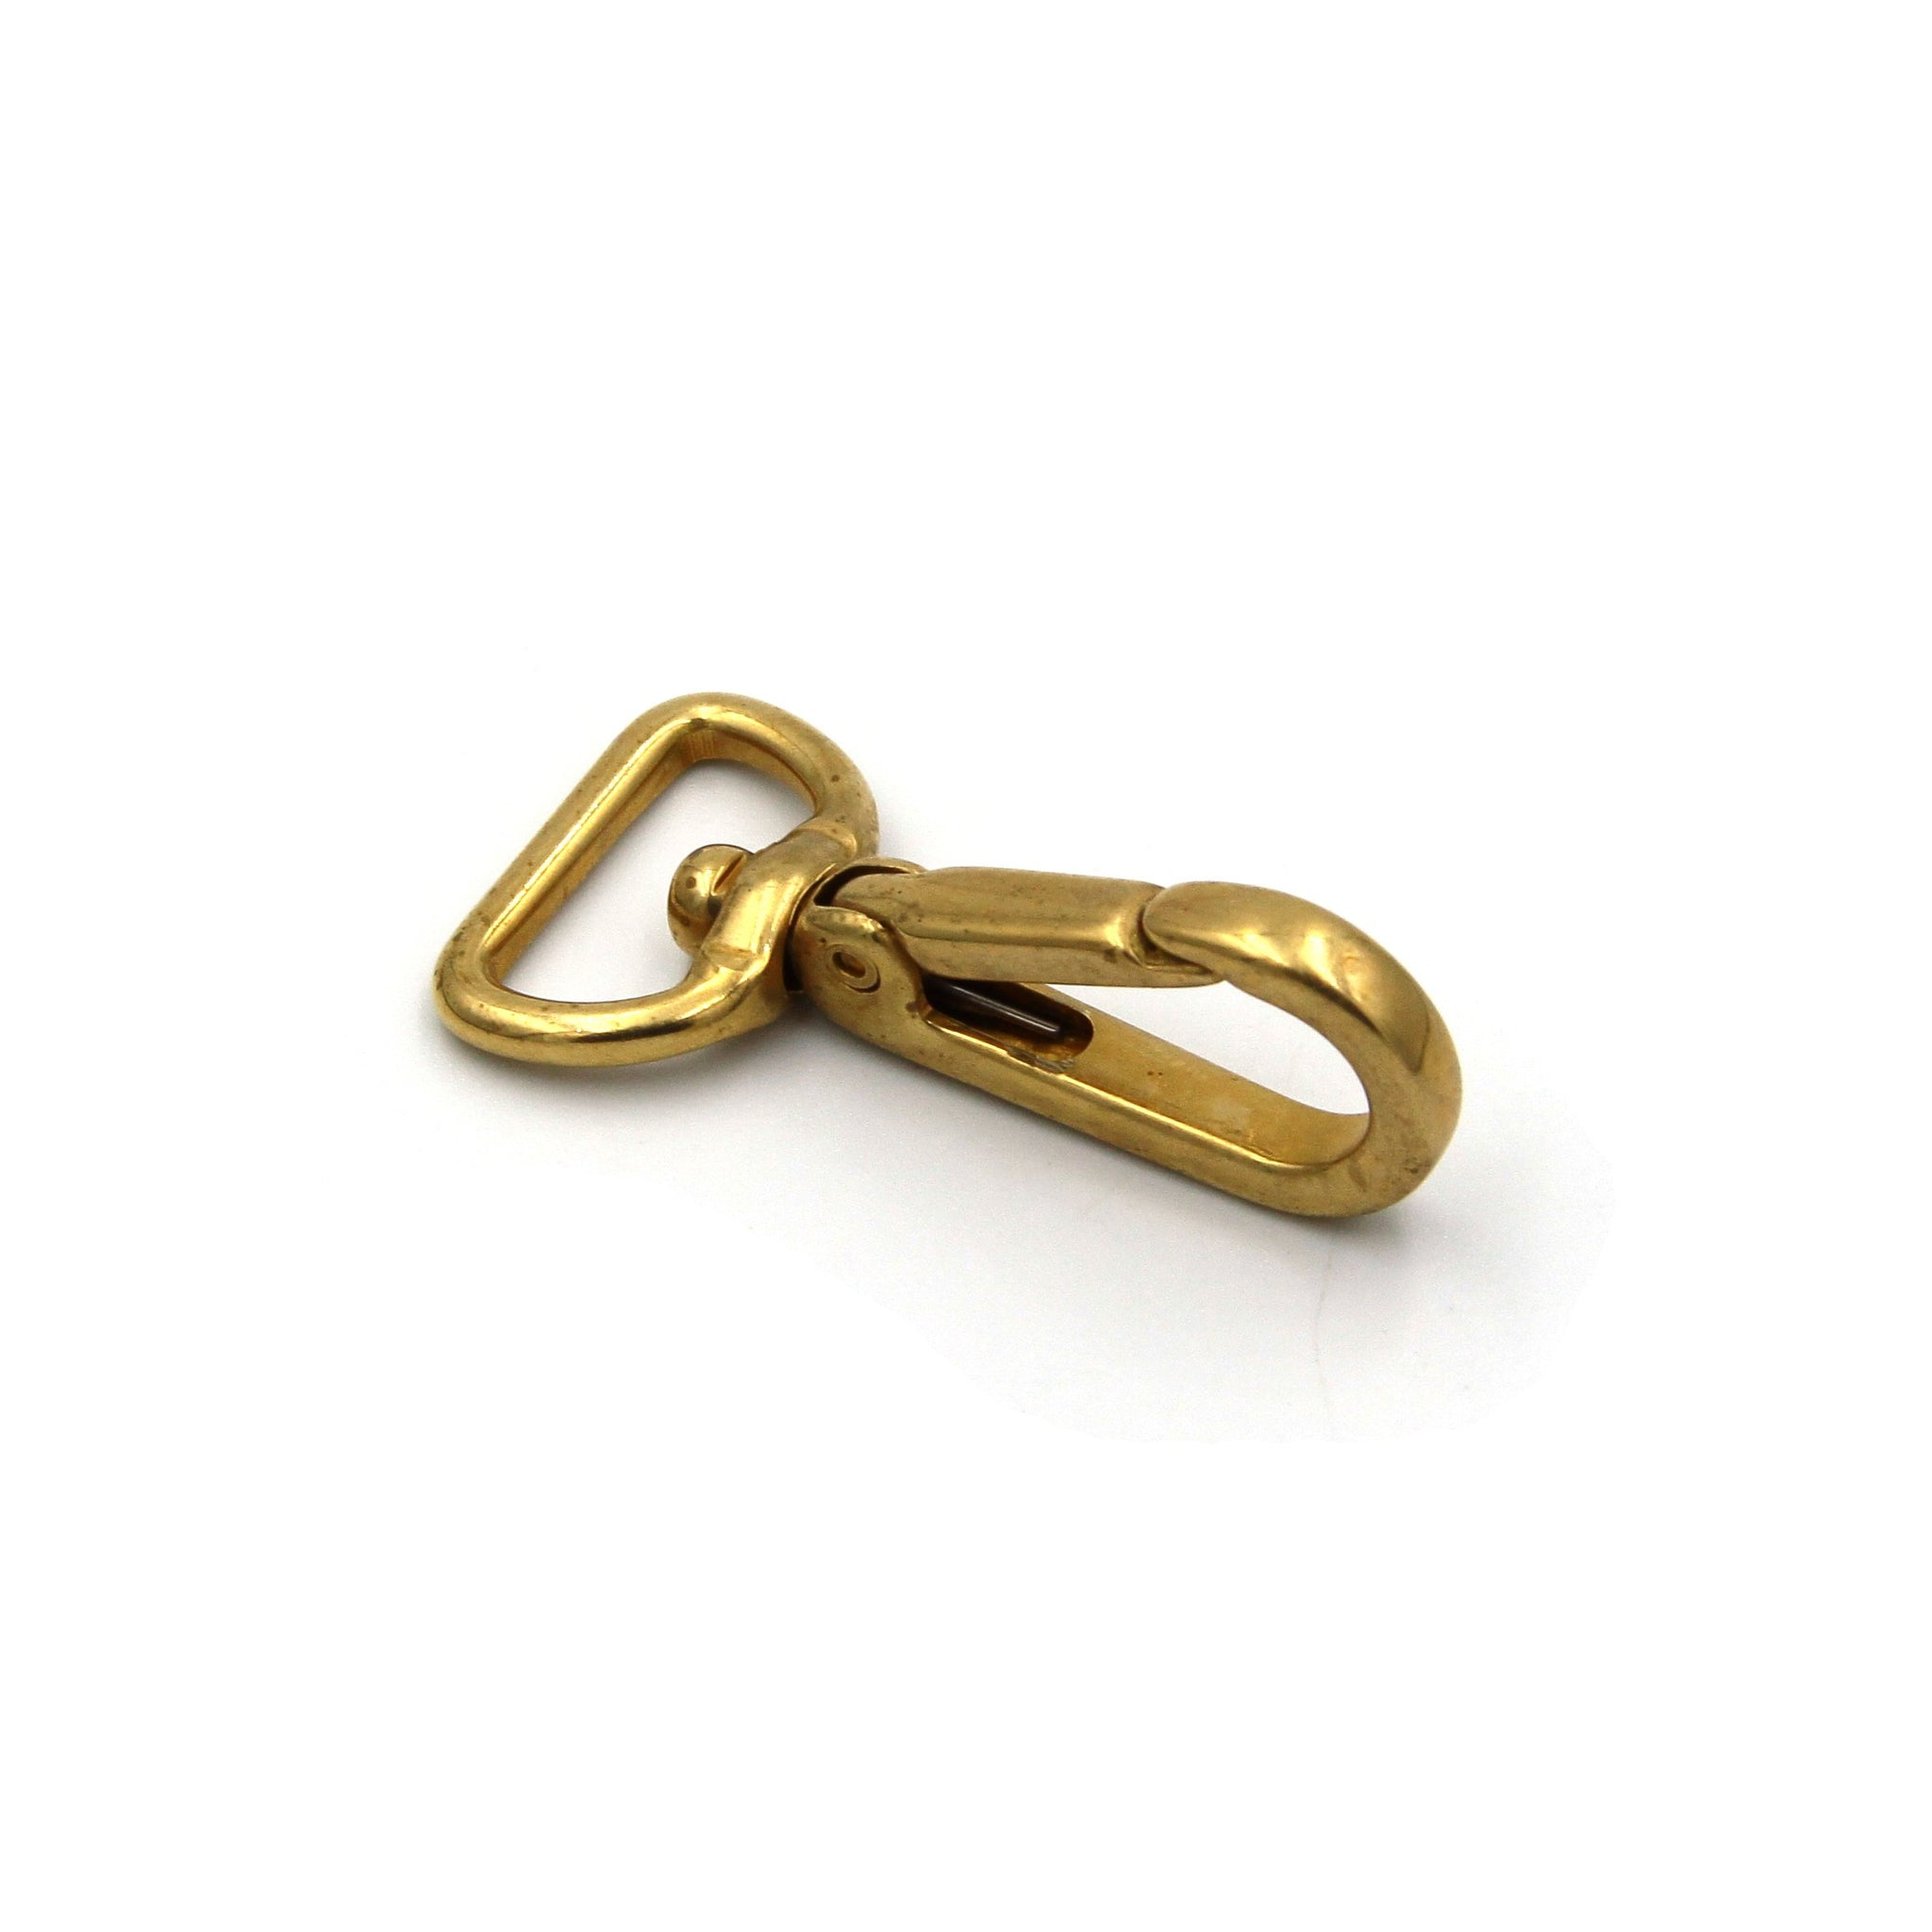 Snap Clasp Japanese Style Swivel Triangle 18mm - Metal Field